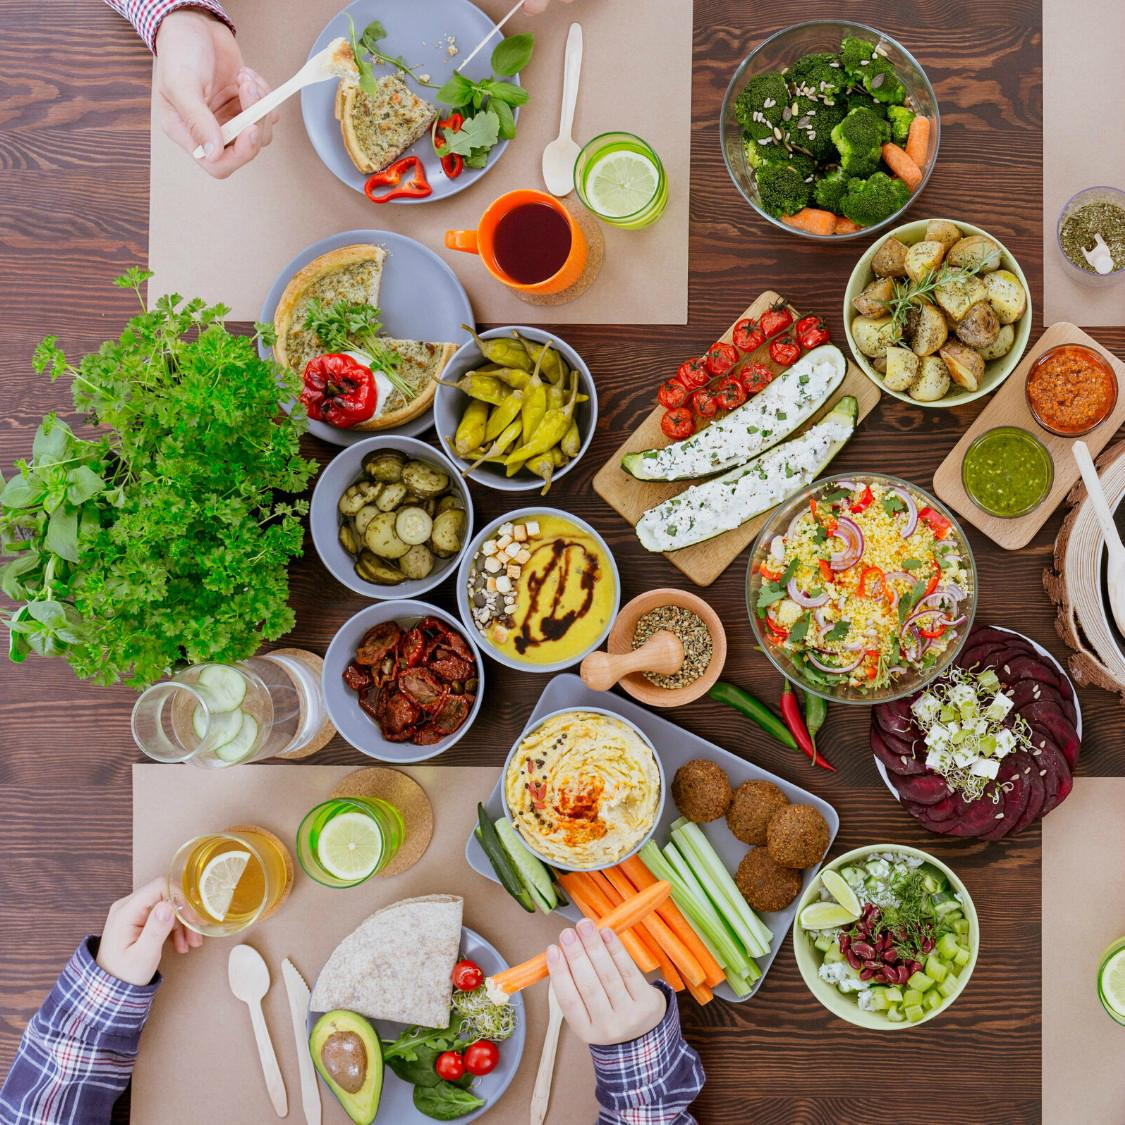 An image of a table full of healthy foods.